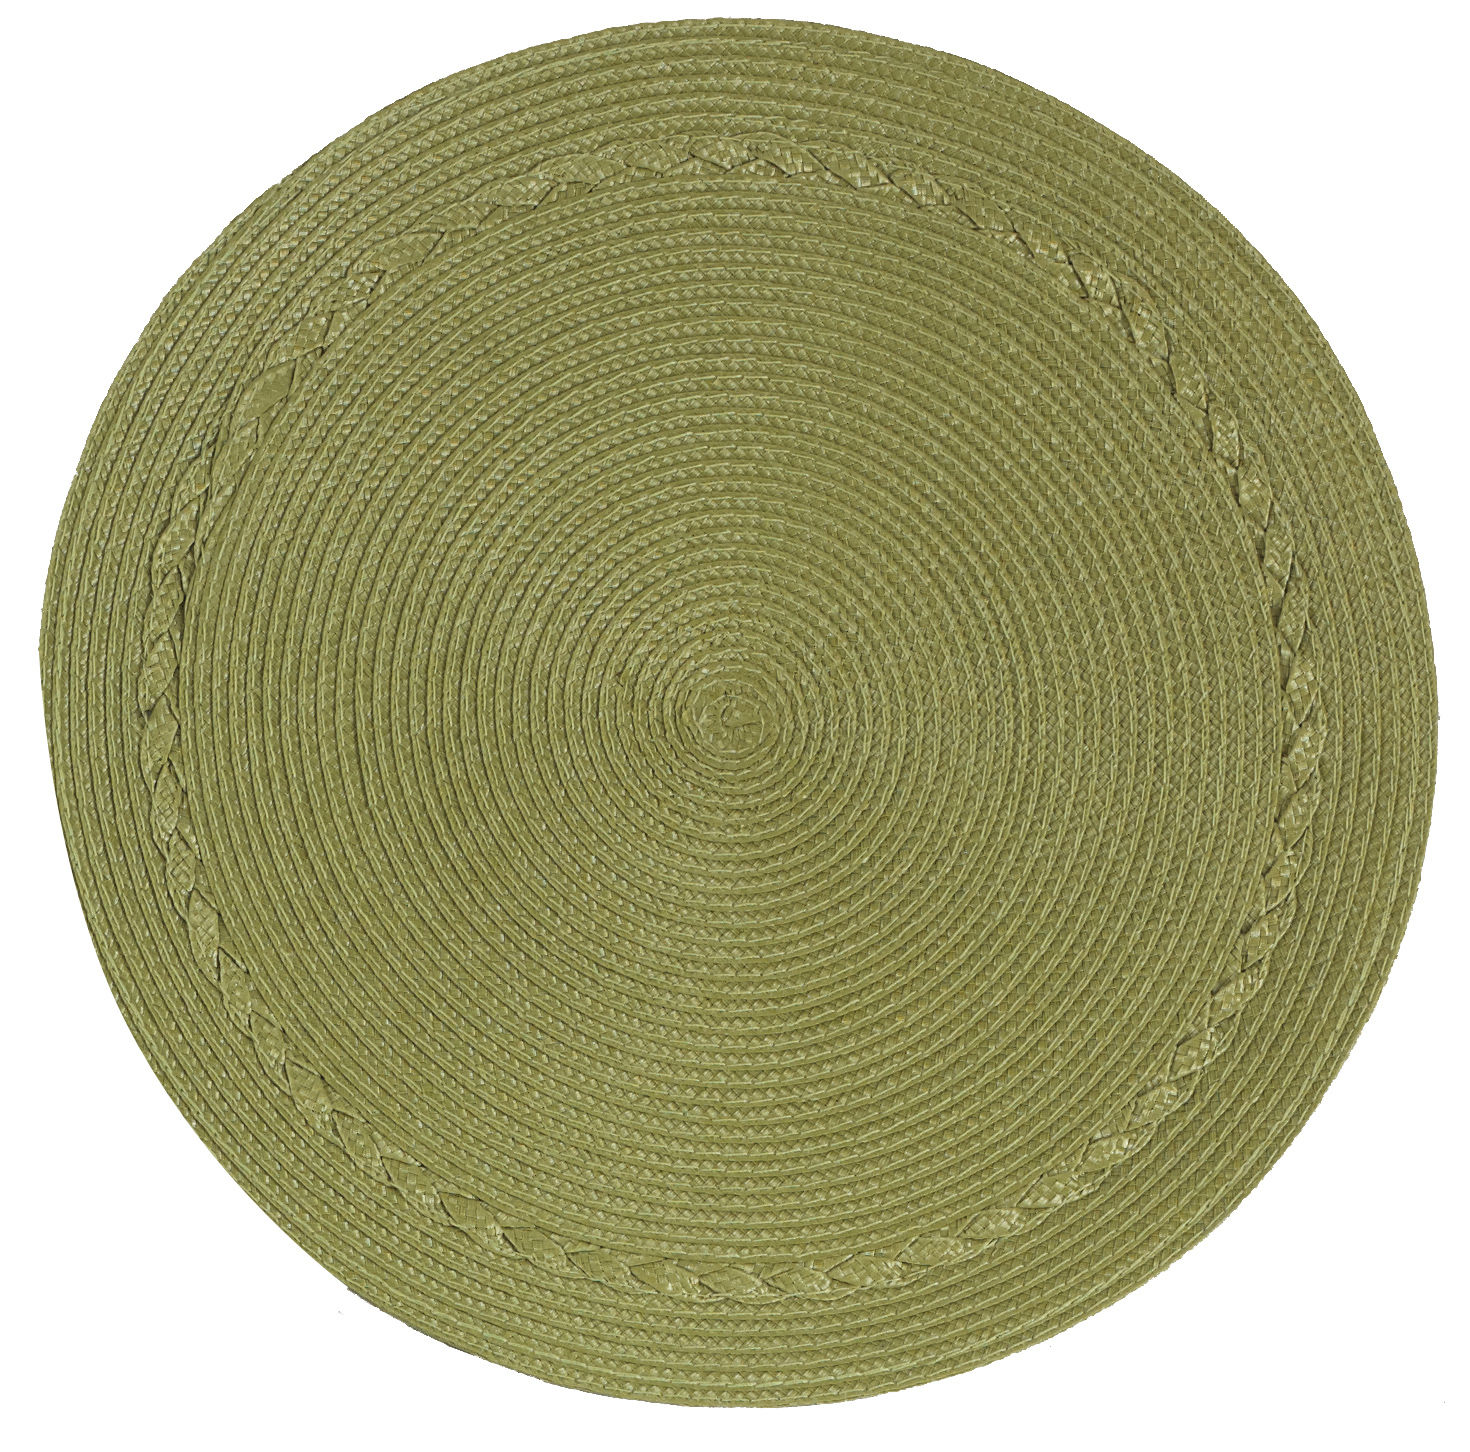 kay dee designs braided round placemat ebay. Black Bedroom Furniture Sets. Home Design Ideas